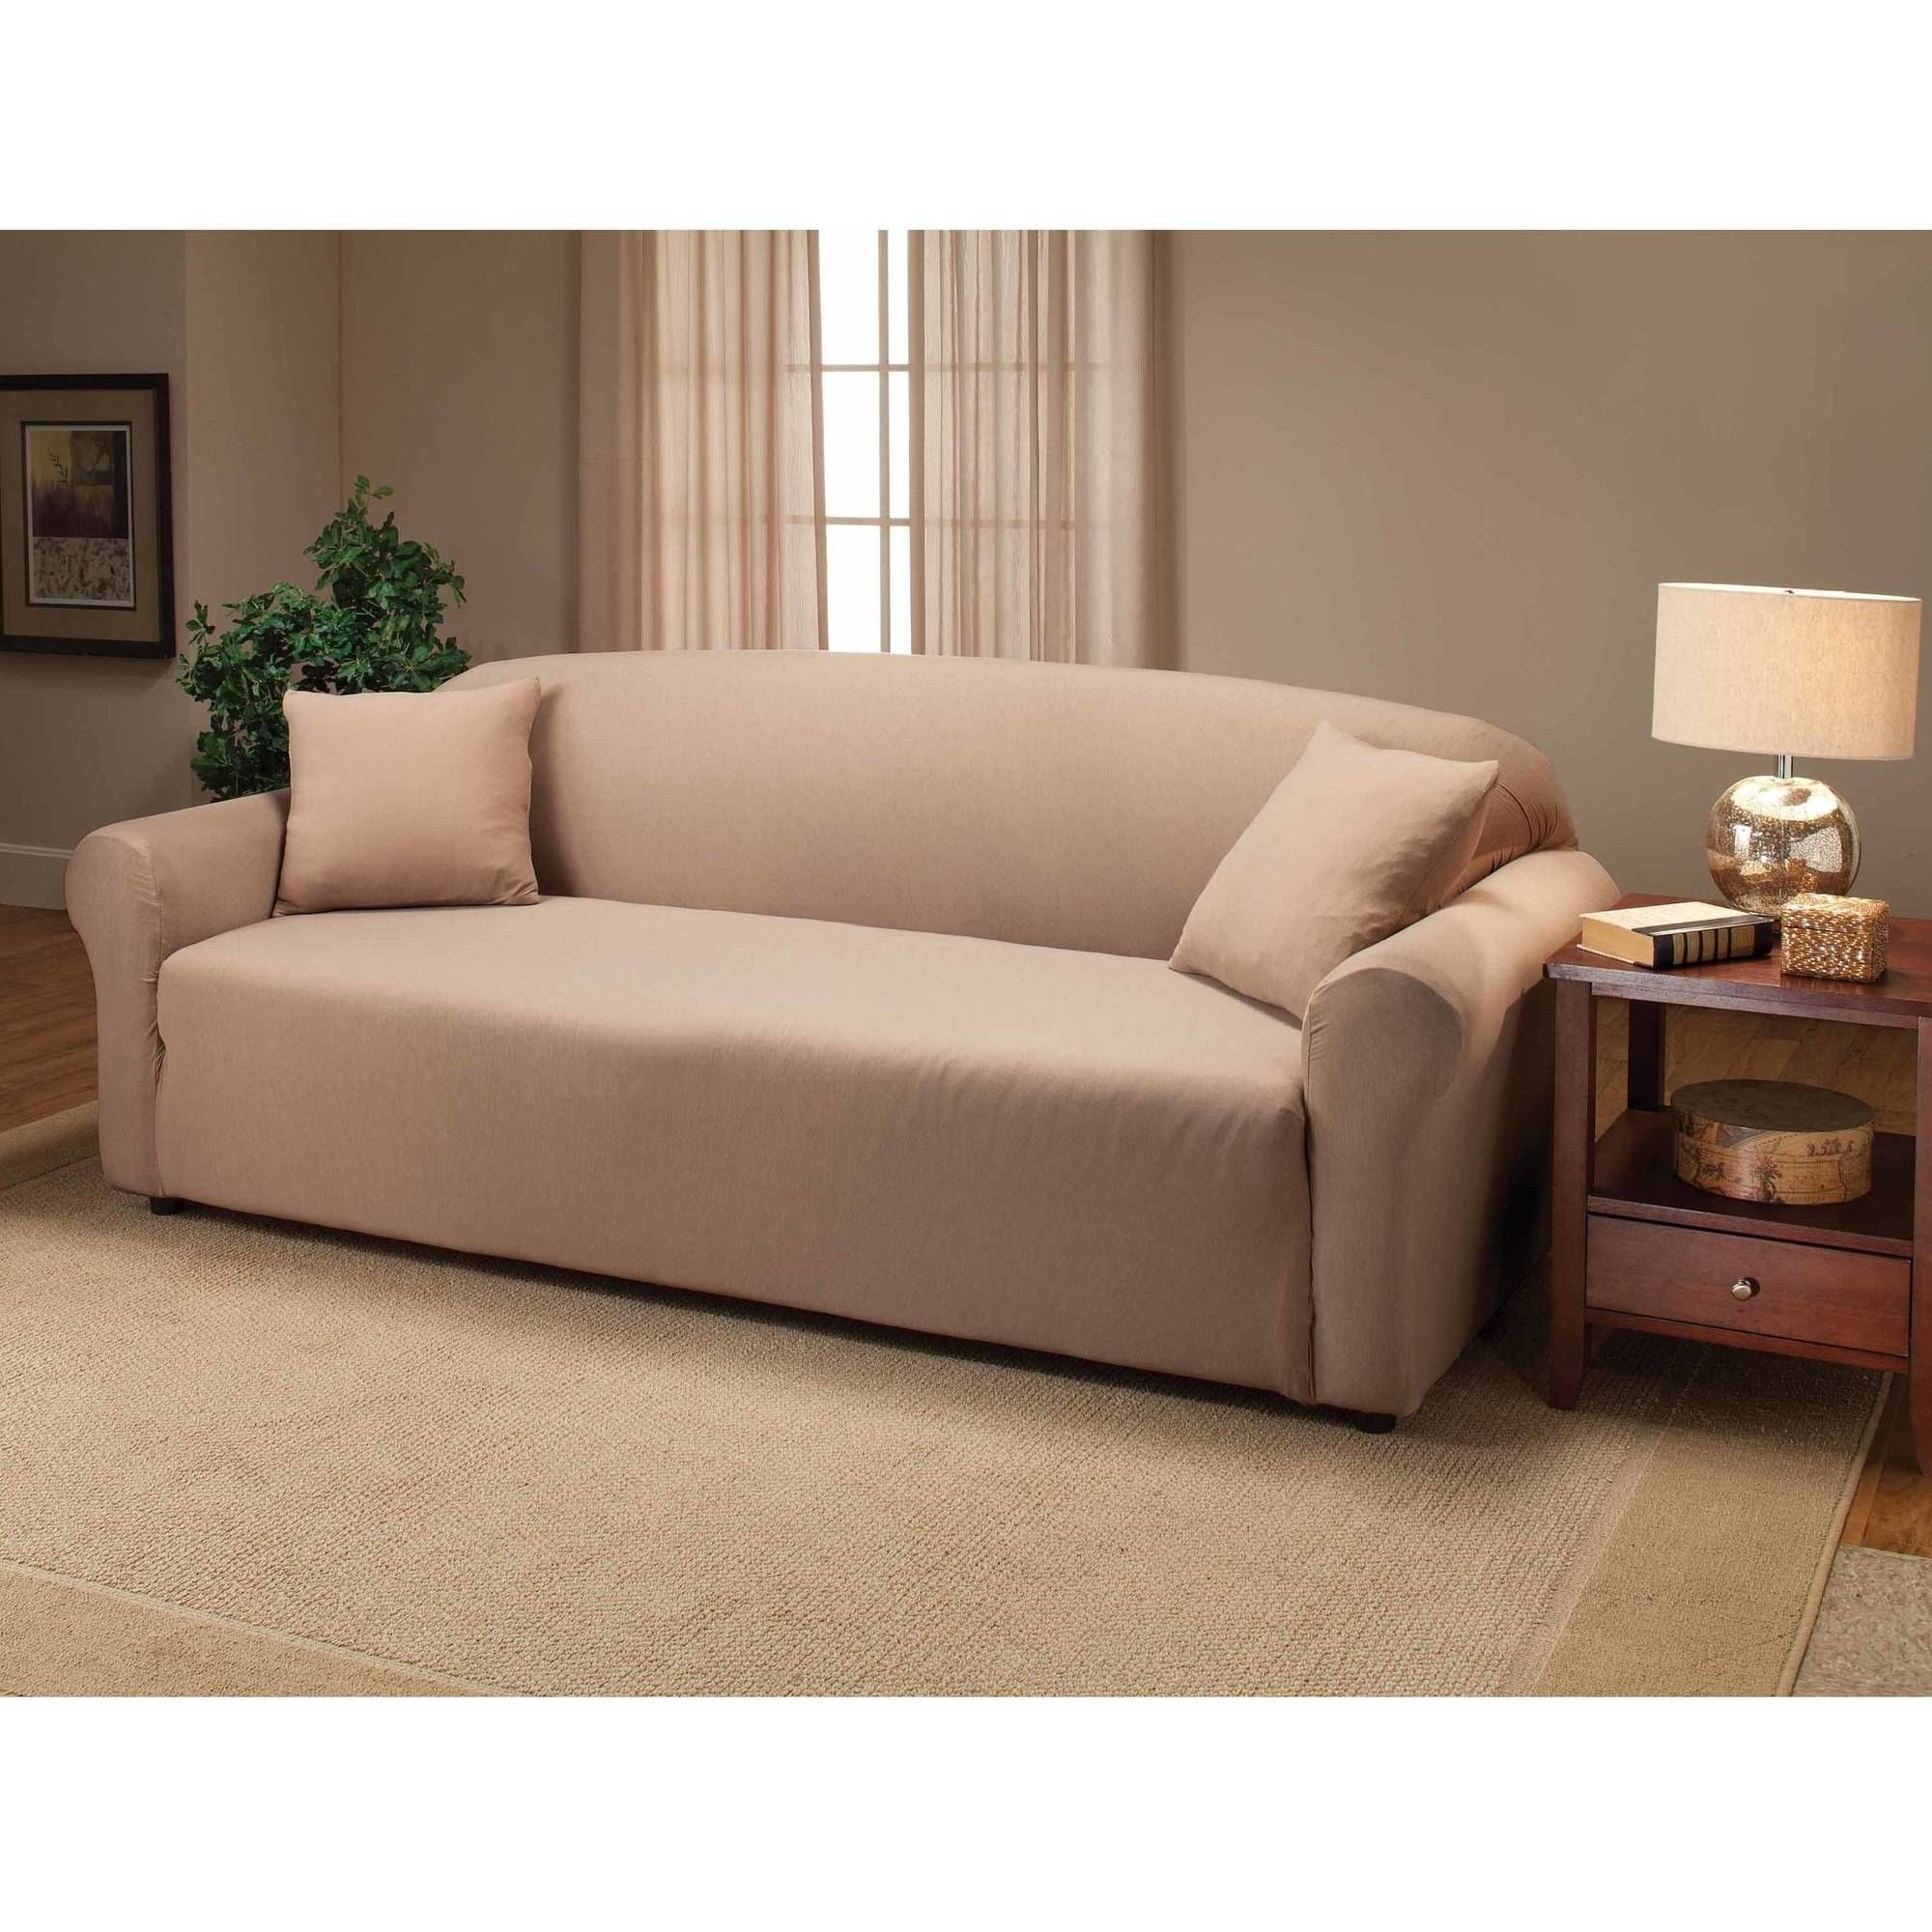 Merveilleux Sears Sectional Couch Covers. Slipcover ...